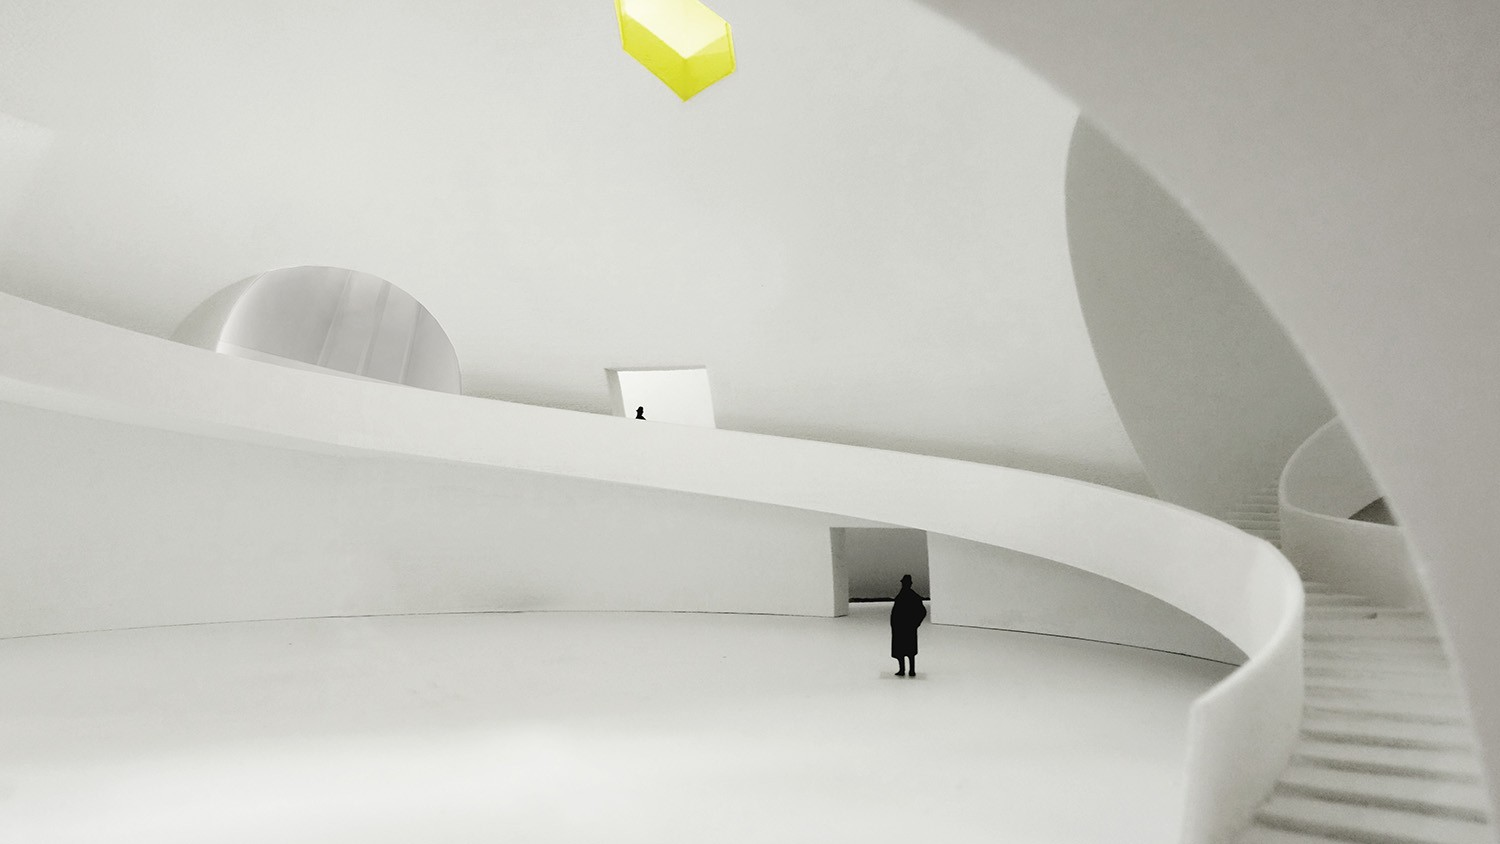 https://s3.us-east-2.amazonaws.com/steven-holl/uploads/projects/project-images/StevenHollArchitects_Necropolis_SHA_14_arrival hall-interior view_WH.jpg